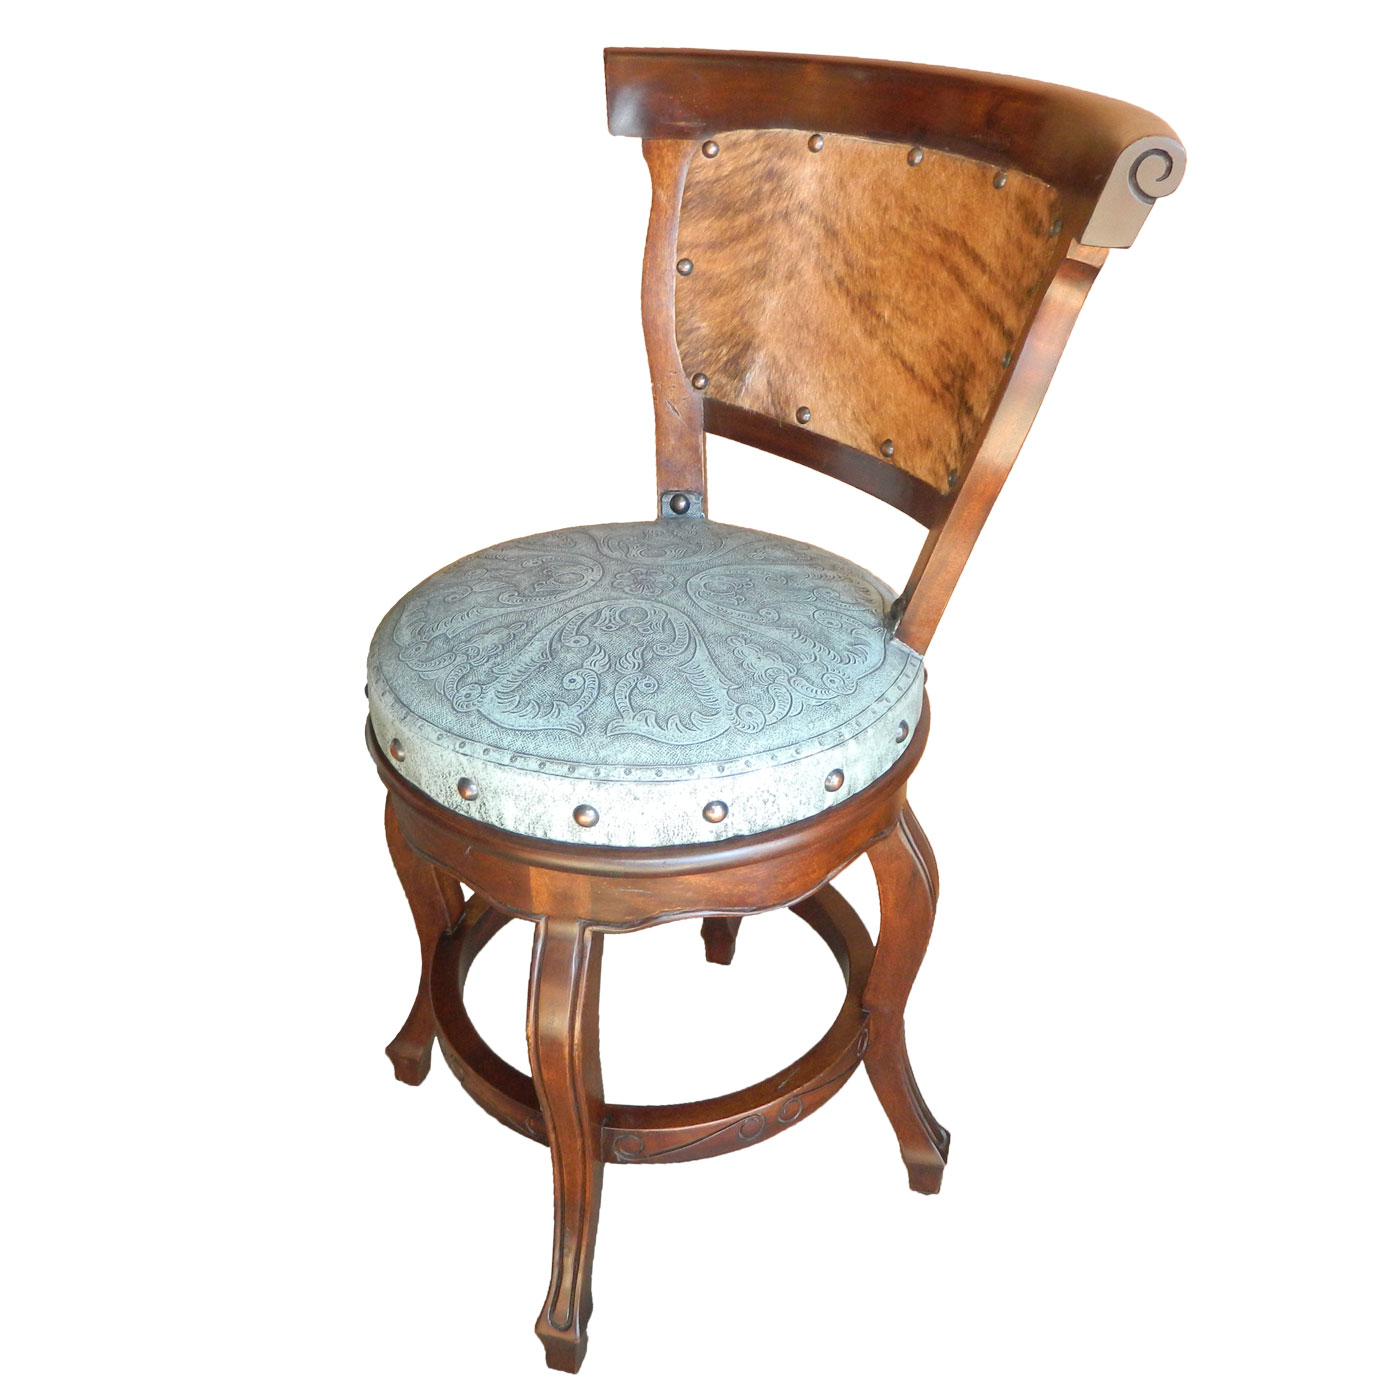 swivel chair in spanish folding rocking lawn heritage round barstool with back colonial call 760 321 8780